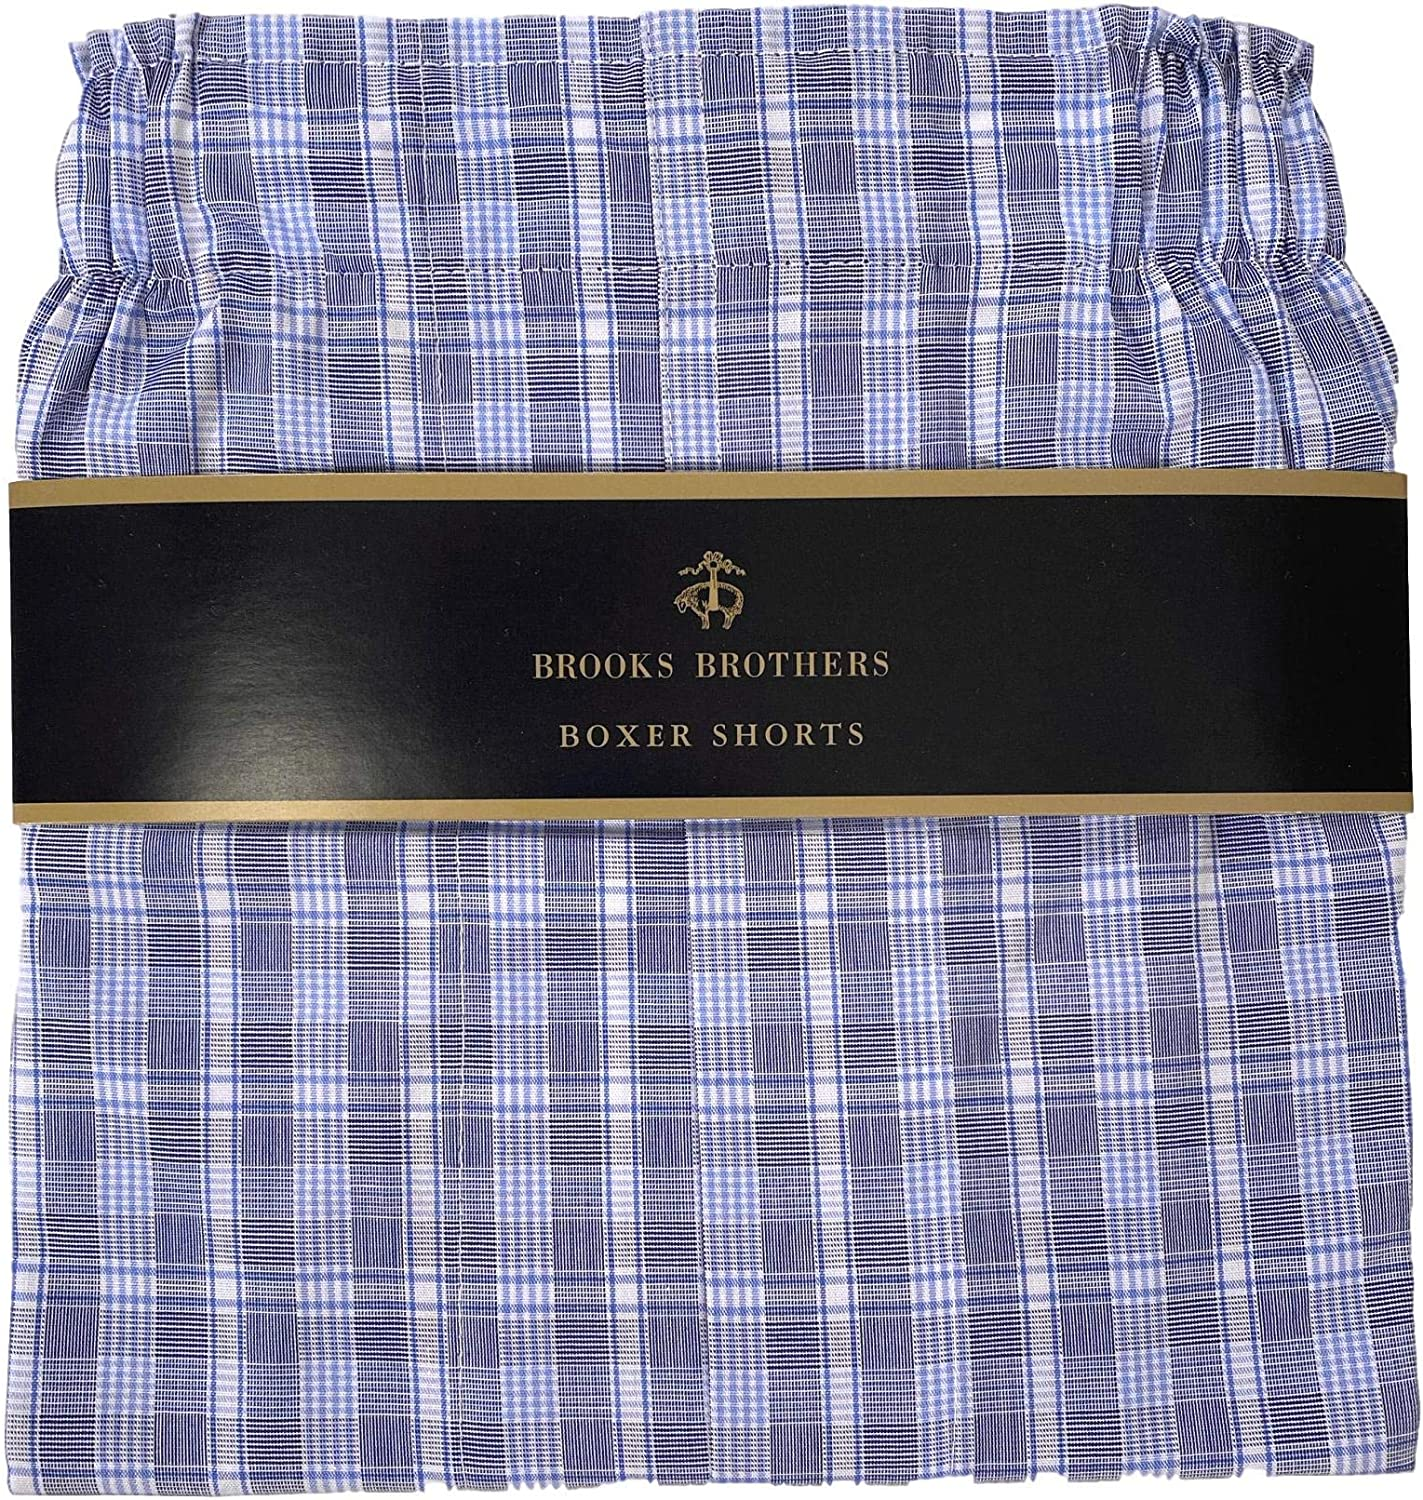 Brooks Brothers Traditional Fit Boxer Shorts Underwear Green Blue Plaid Boxers